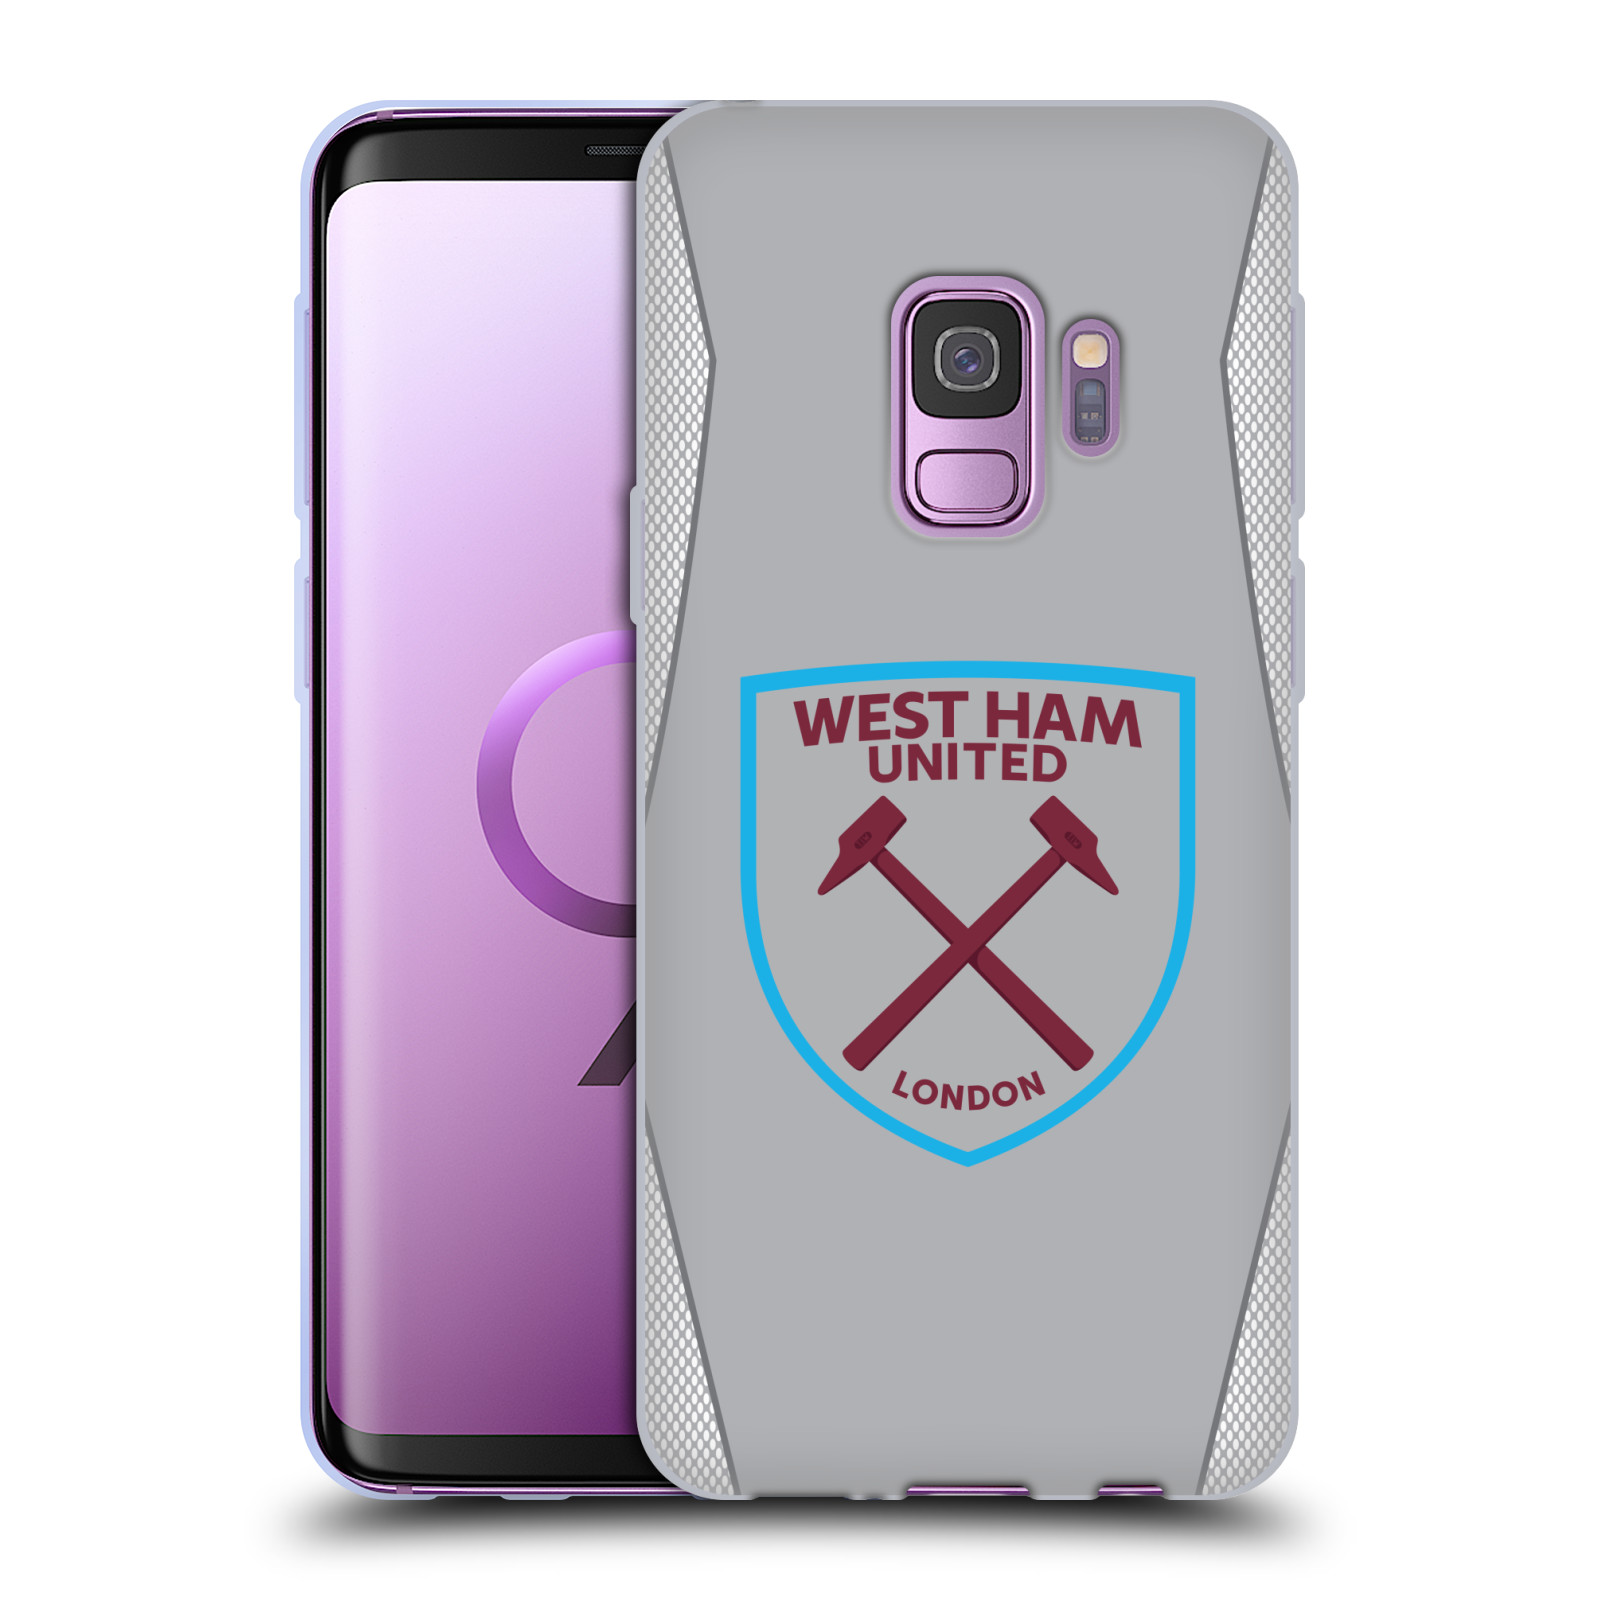 WEST-HAM-UNITED-FC-2018-19-KIT-CREST-COVER-MORBIDA-IN-GEL-PER-SAMSUNG-TELEFONI-1